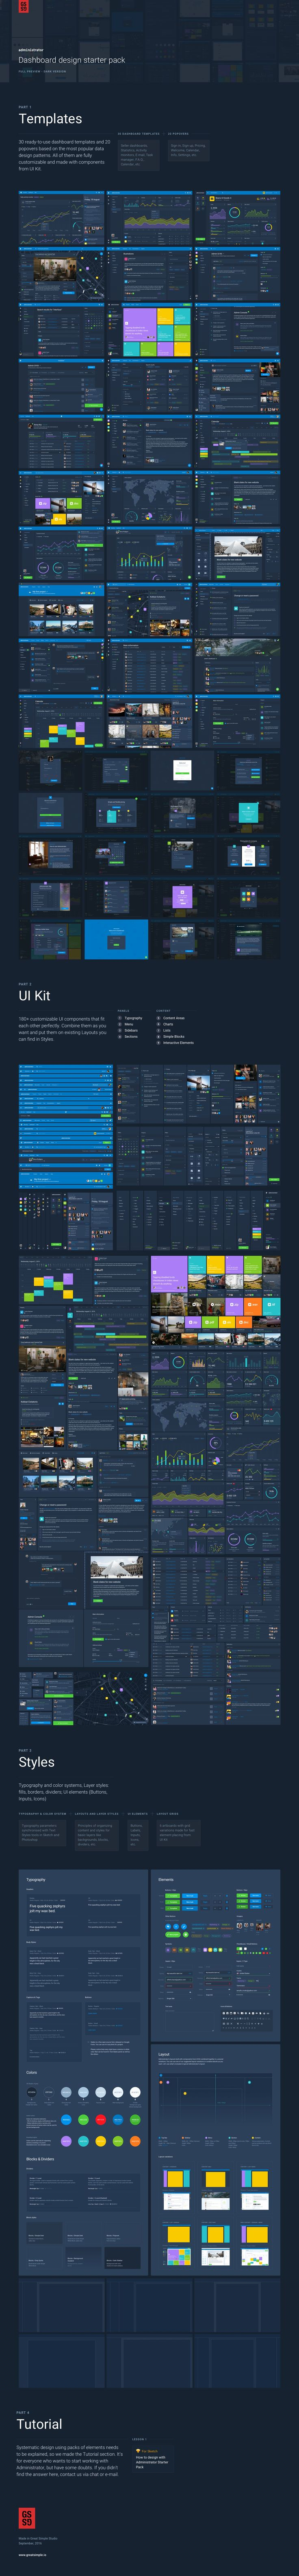 Administrator: Dashboard Design Pack • Available here → https://creativemarket.com/greatsimple/928826-Administrator-Dashboard-Design-Pack?u=pxcr